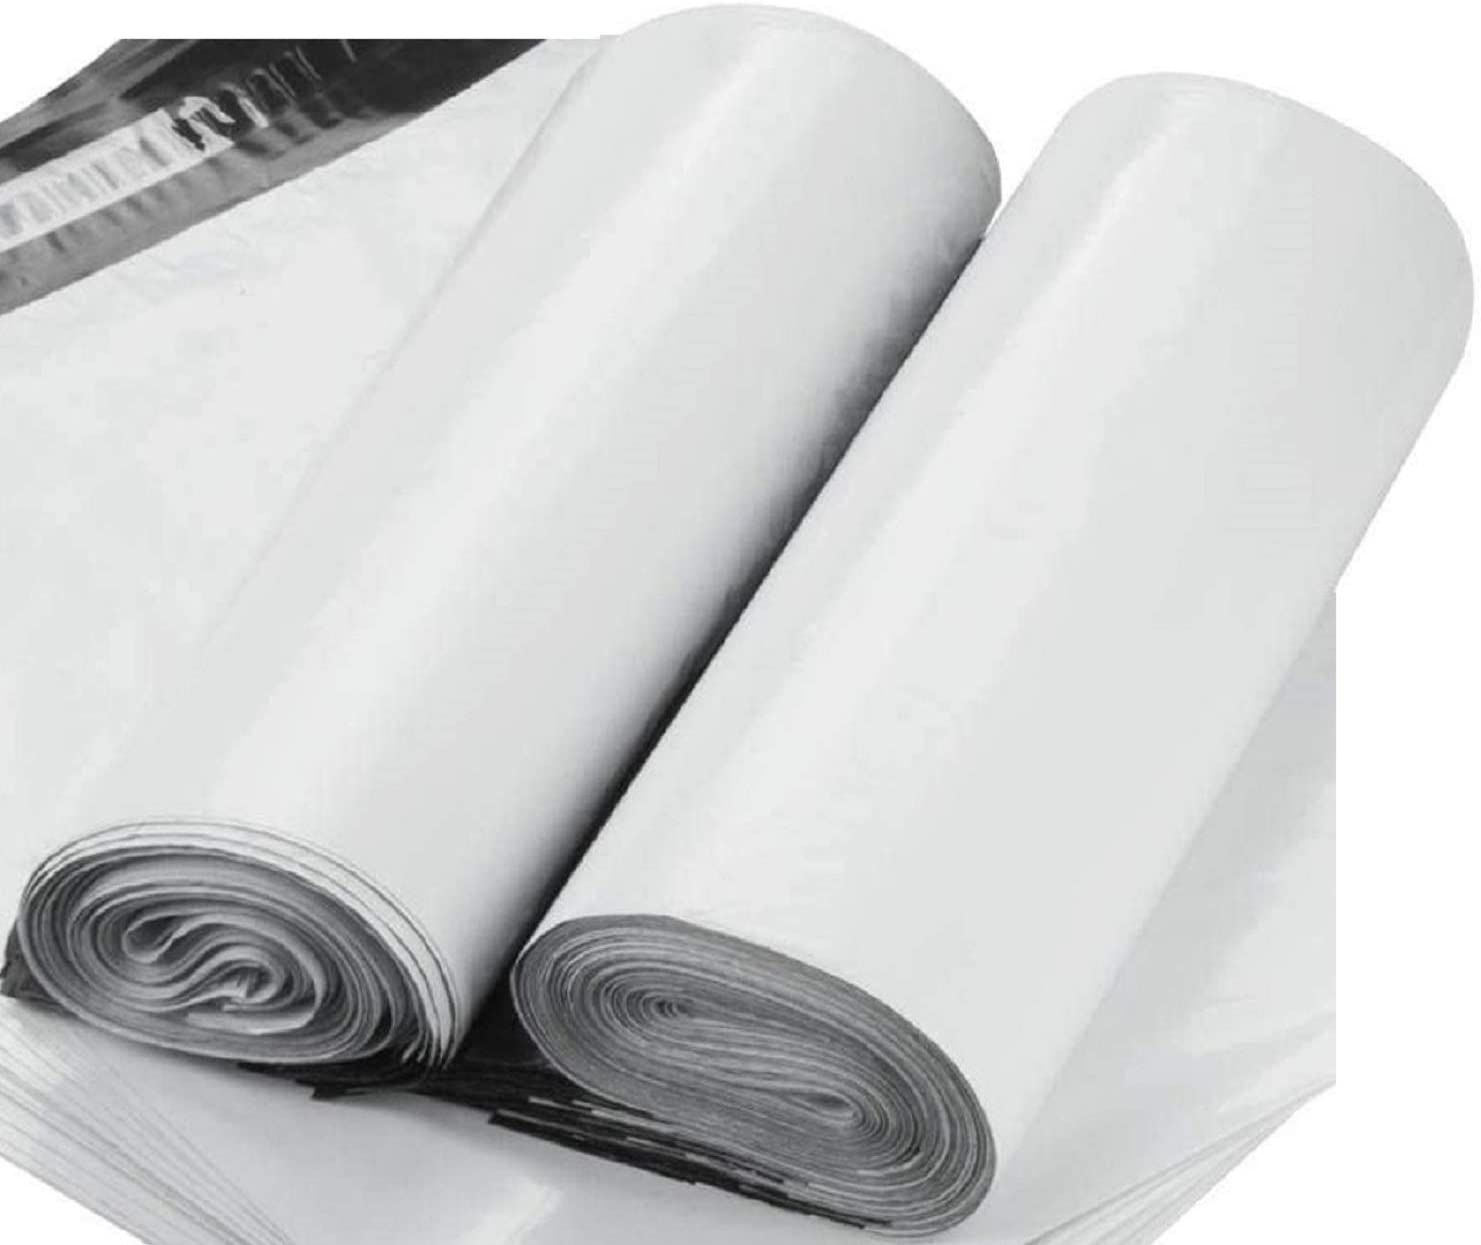 AM-Ink 2000 OFFicial shop Bags-6x9 Our shop most popular 2.5 Mil Self Premium Matte Thickness Finish